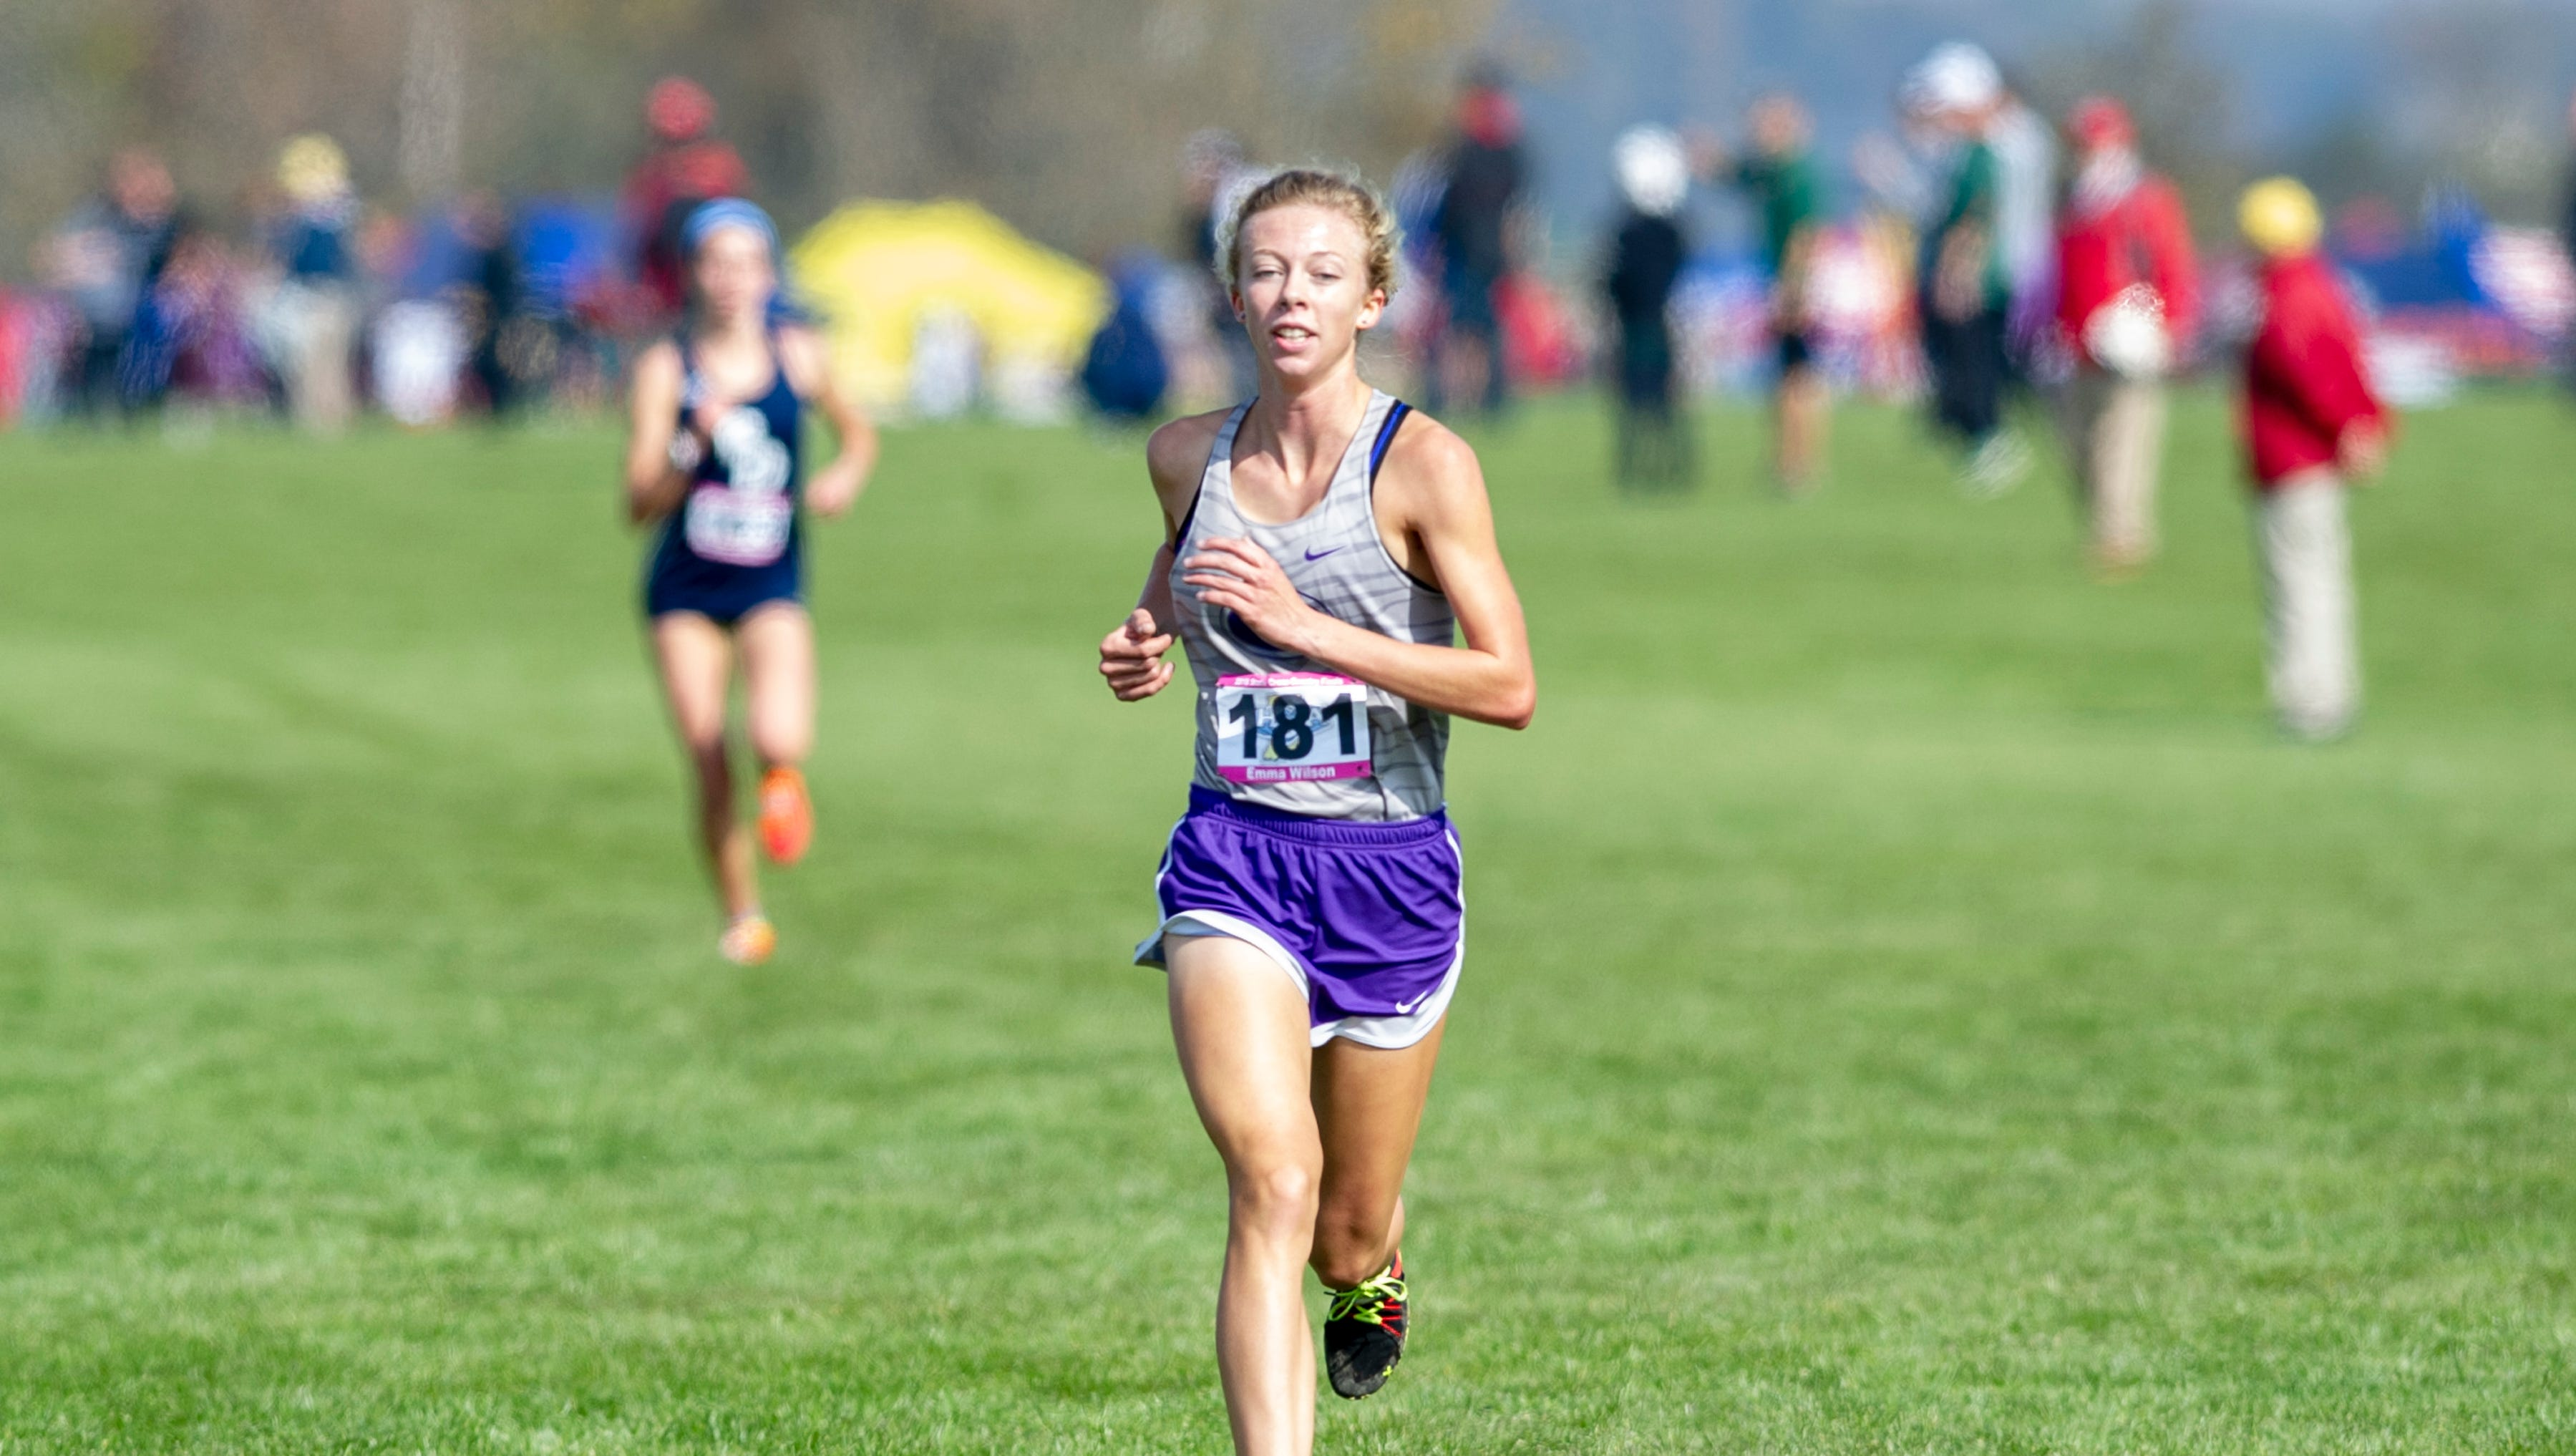 Greencastle High School runner Emma Wilson (181)...